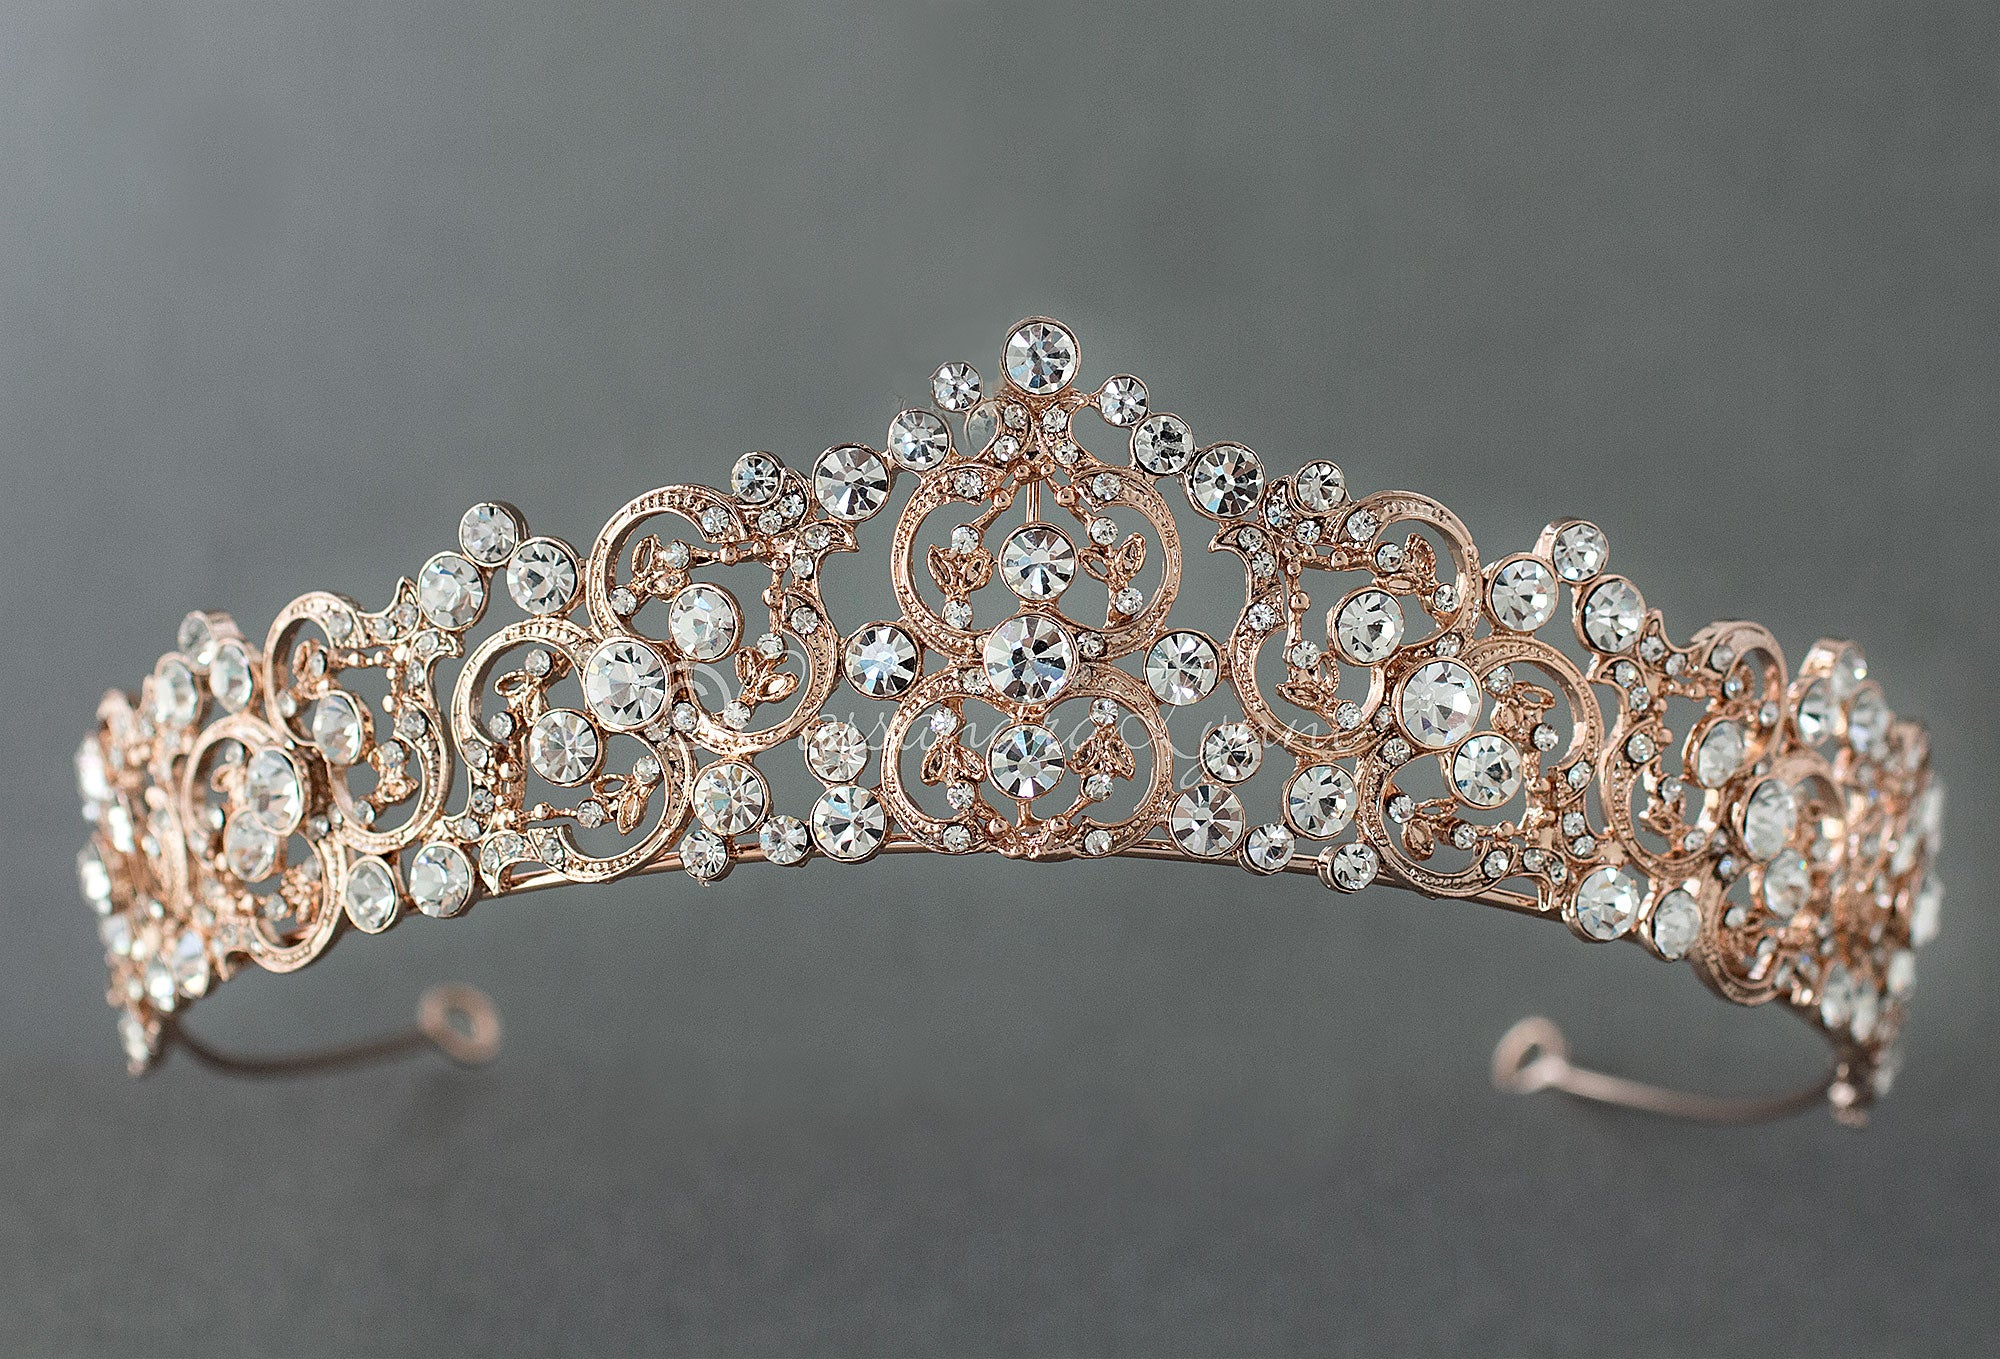 Wedding Tiara of Round Crystal Stones